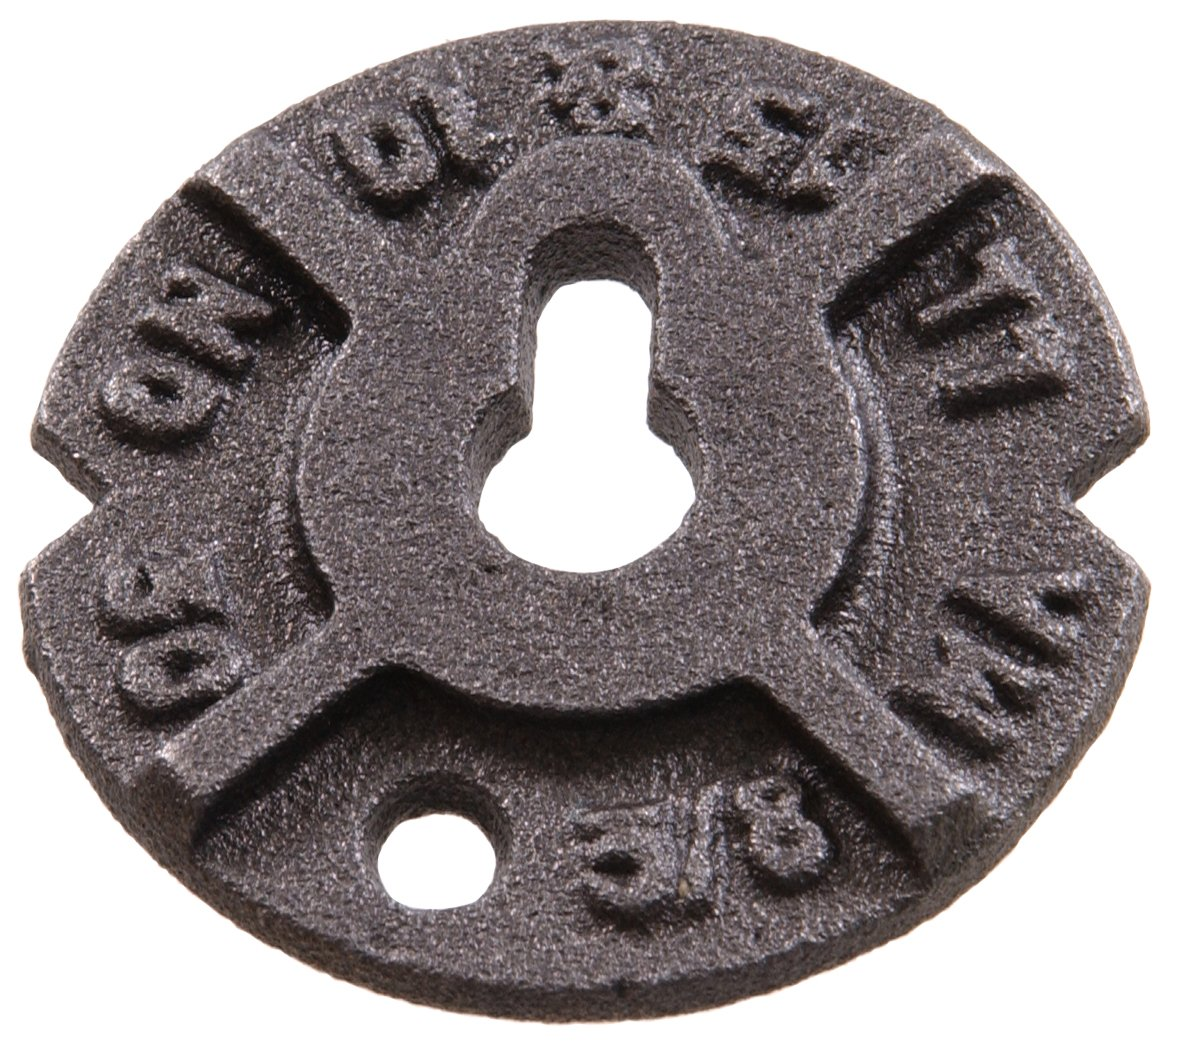 The Hillman Group 290130 3/8-Inch Malleable Washer, 5-Pound-Pack by Hillman